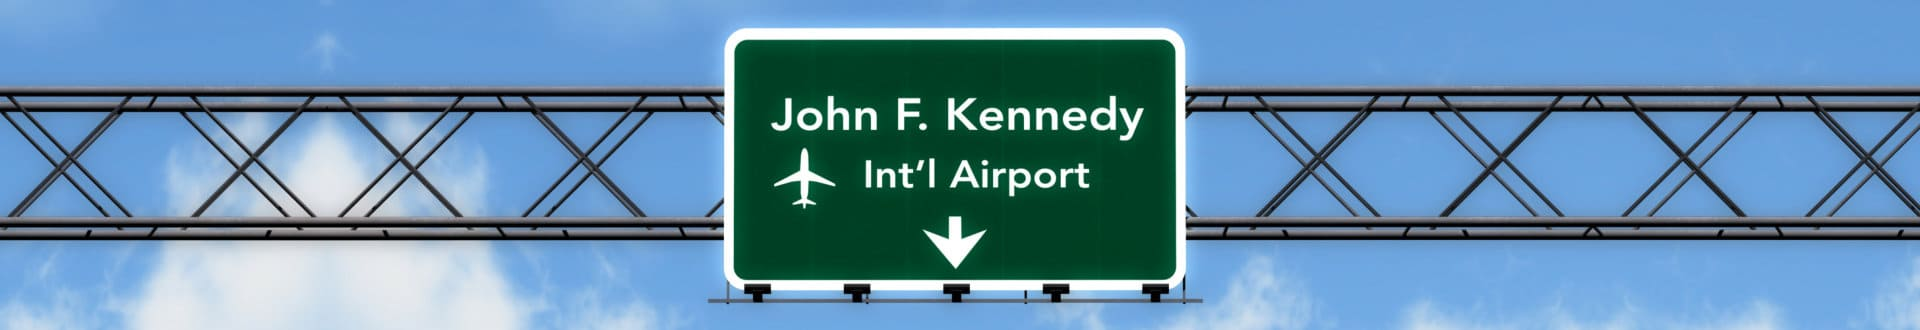 JFK Airport Sign